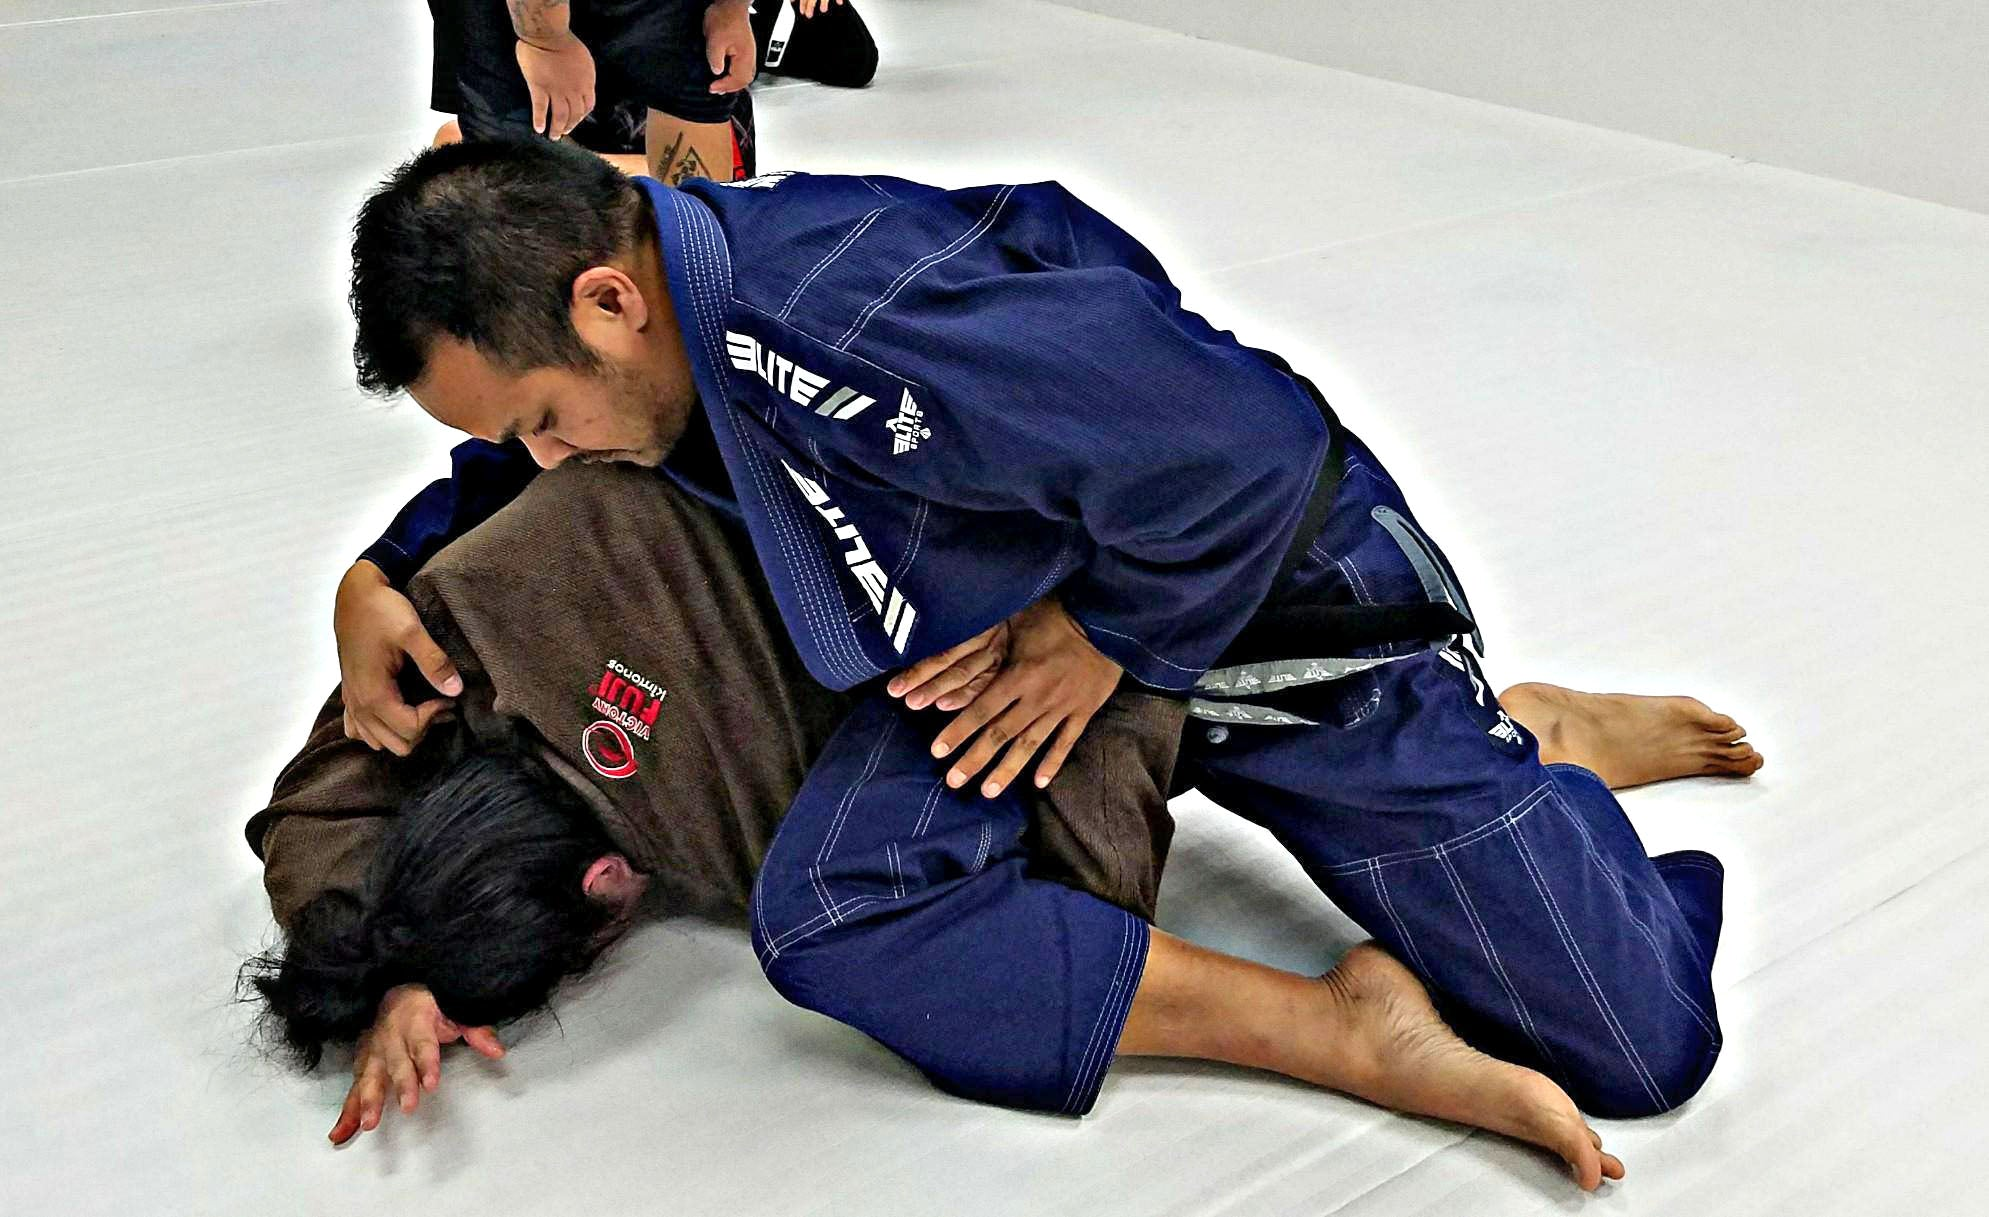 Elite sports Team Elite Bjj Eric Callueng image3